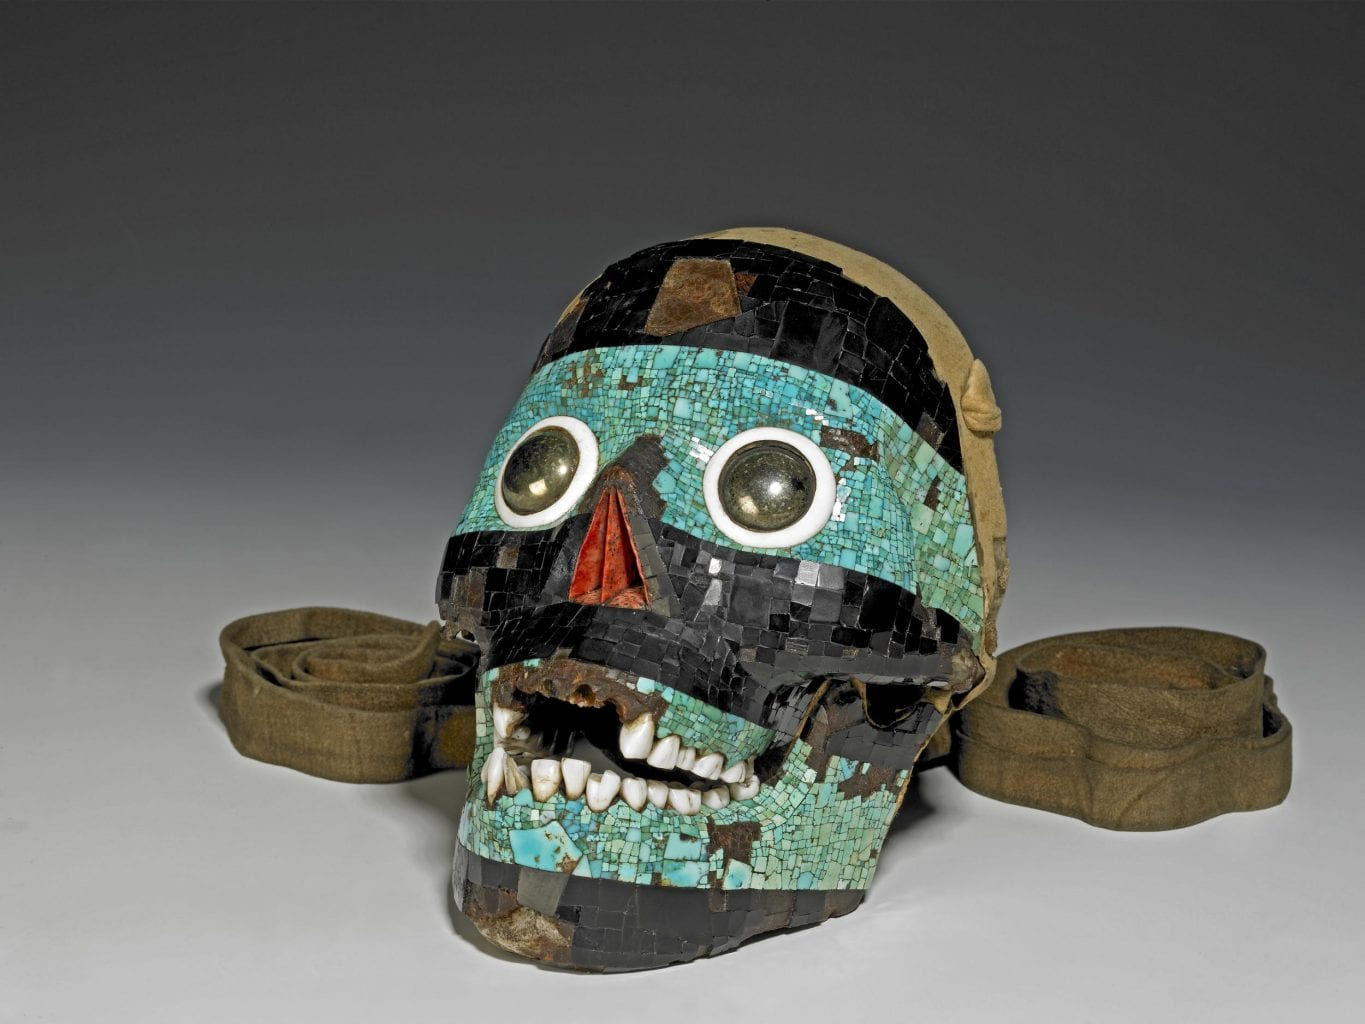 Experts believe this decorated human skull is a depiction of the Mesoamerican deity Tezcatlipoca. Credit: British Museum